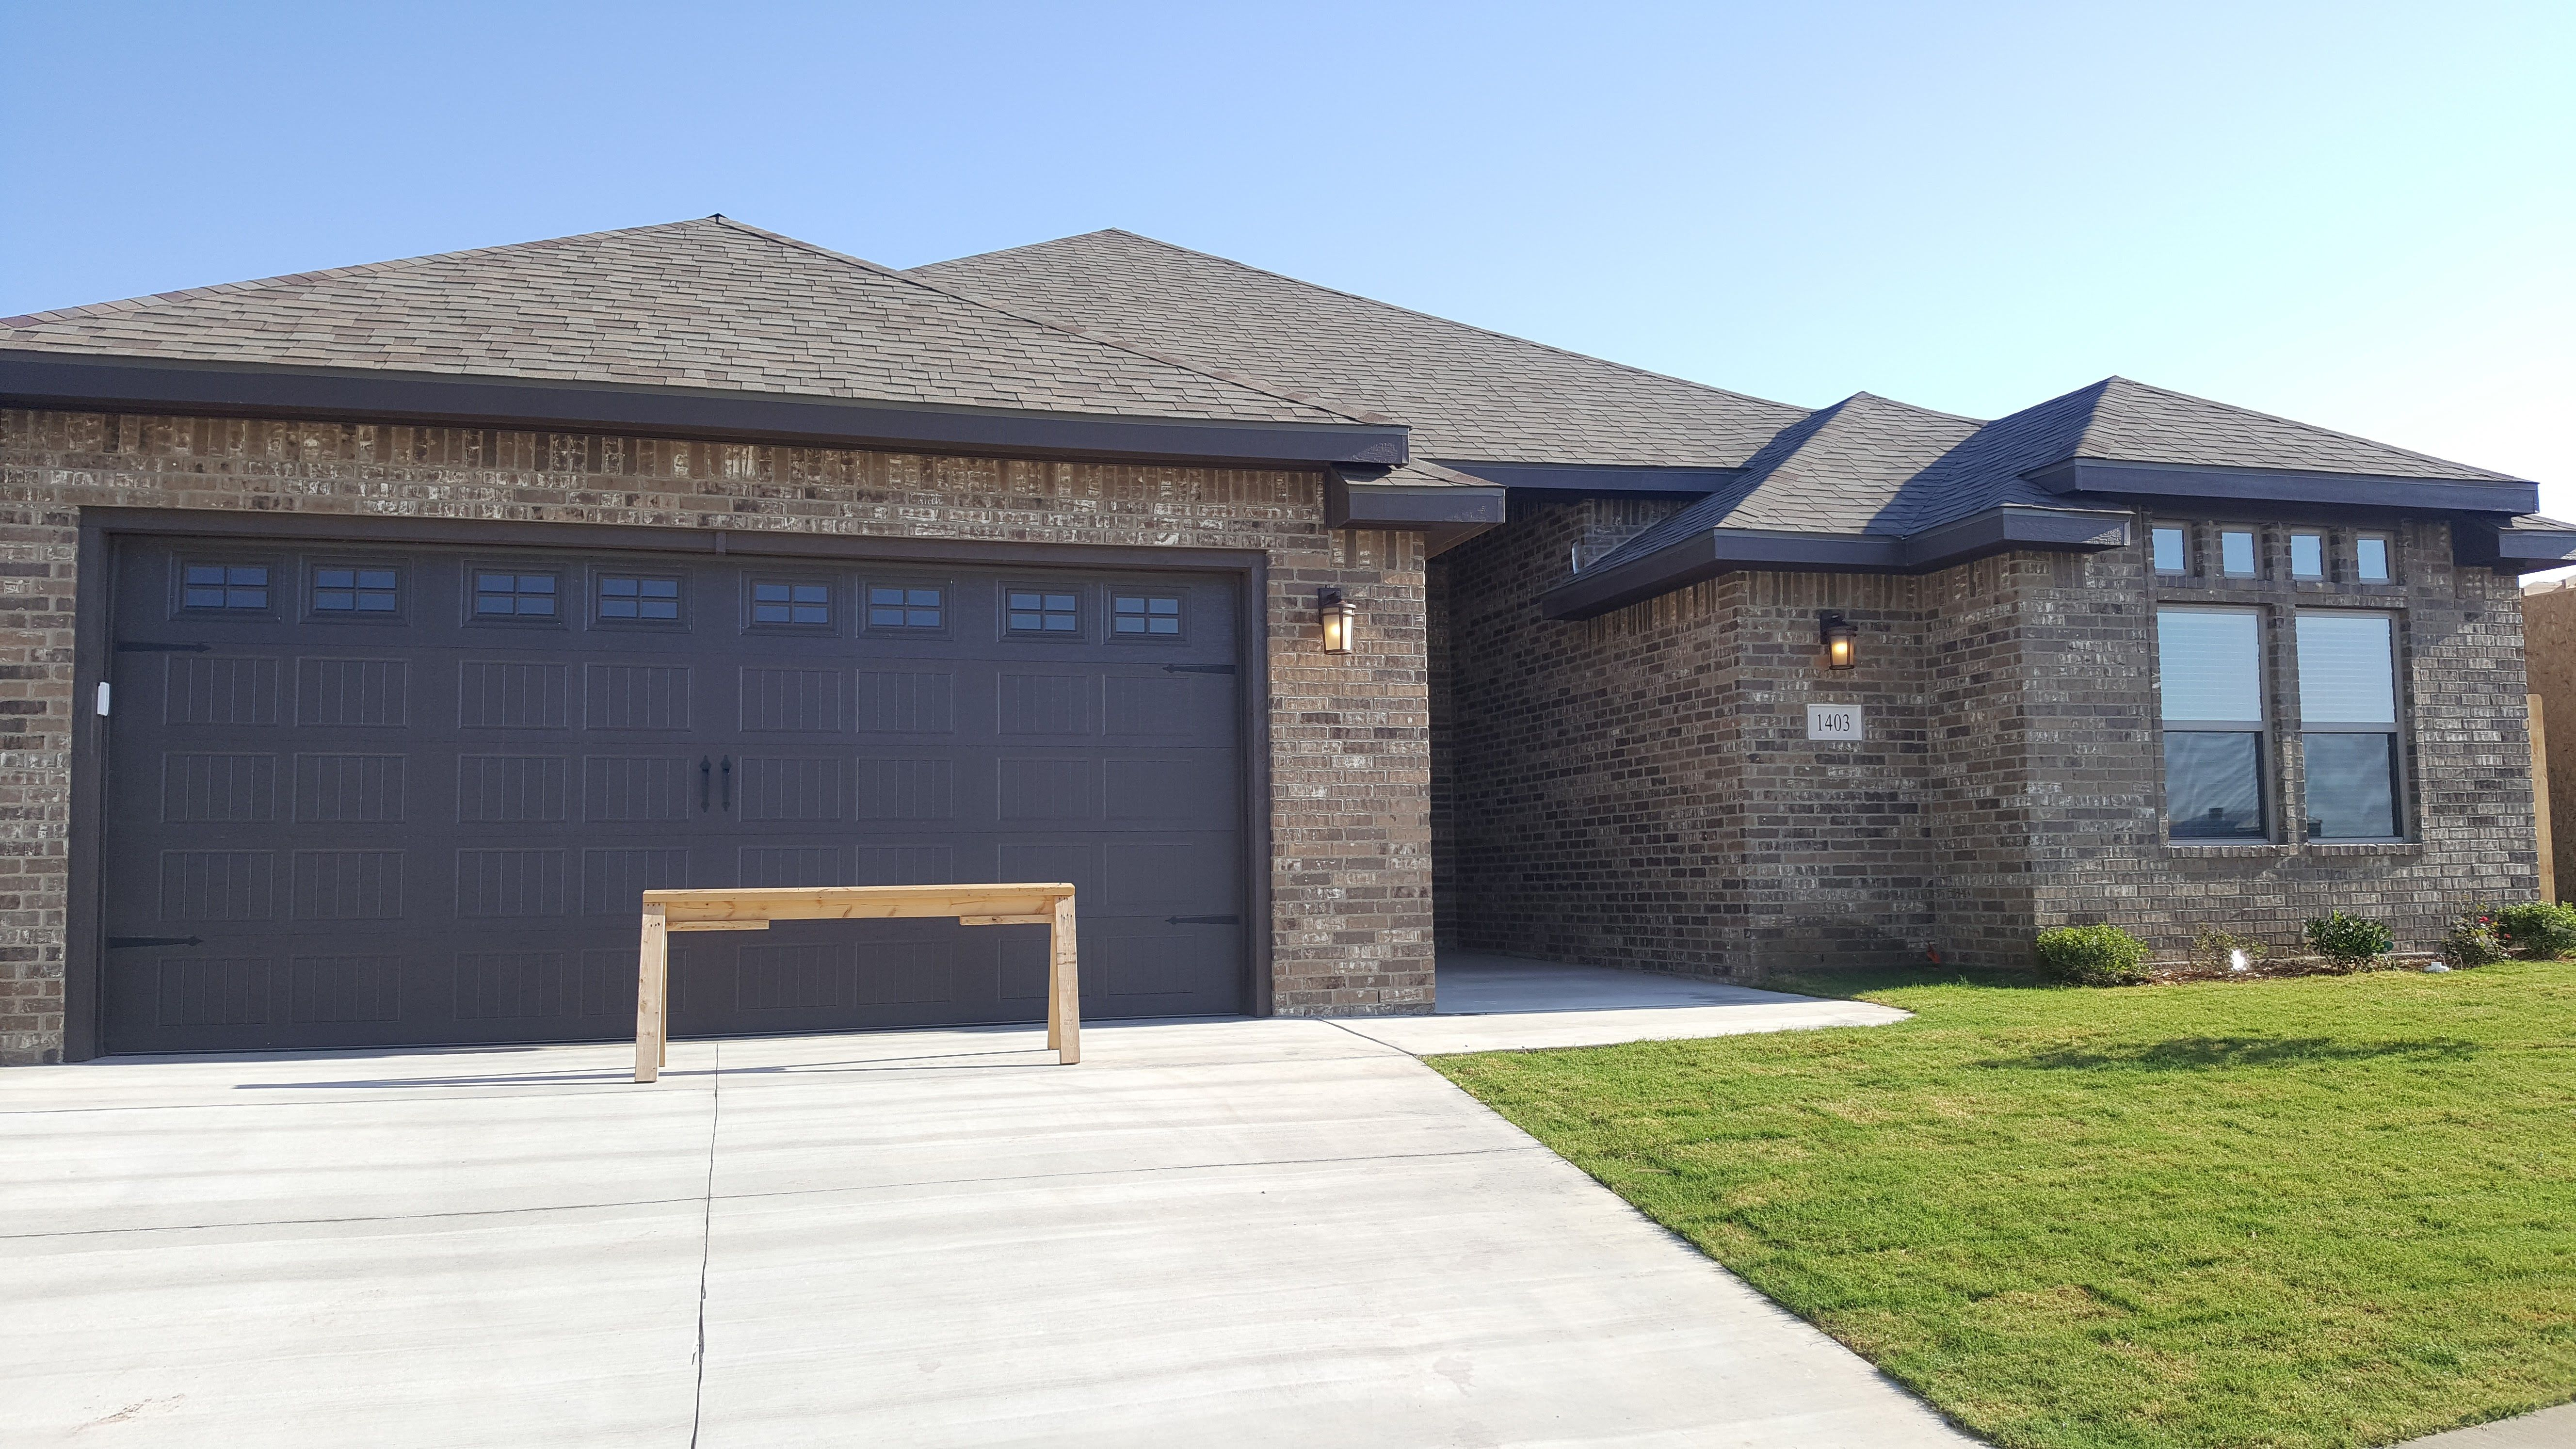 Fabiana A By Permian Homes Color Scheme E4 French Chateau Brick With Chocolate Trim And Garage Door House Color Schemes Model Homes New Homes